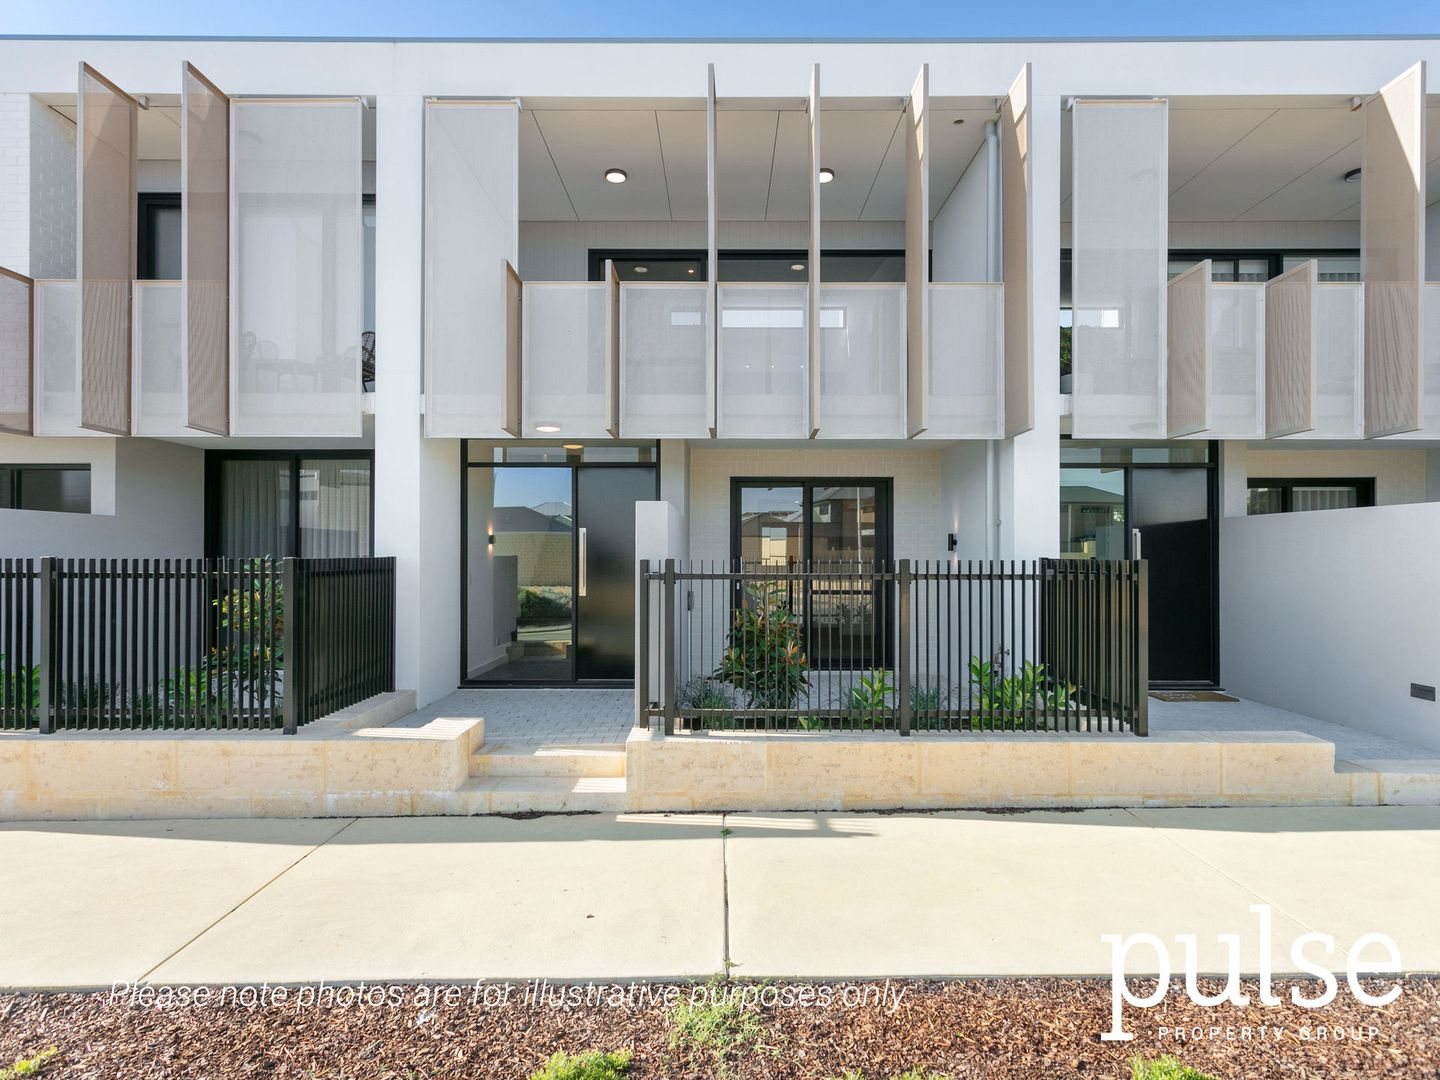 2/50 Lullworth Terrace, North Coogee WA 6163, Image 1